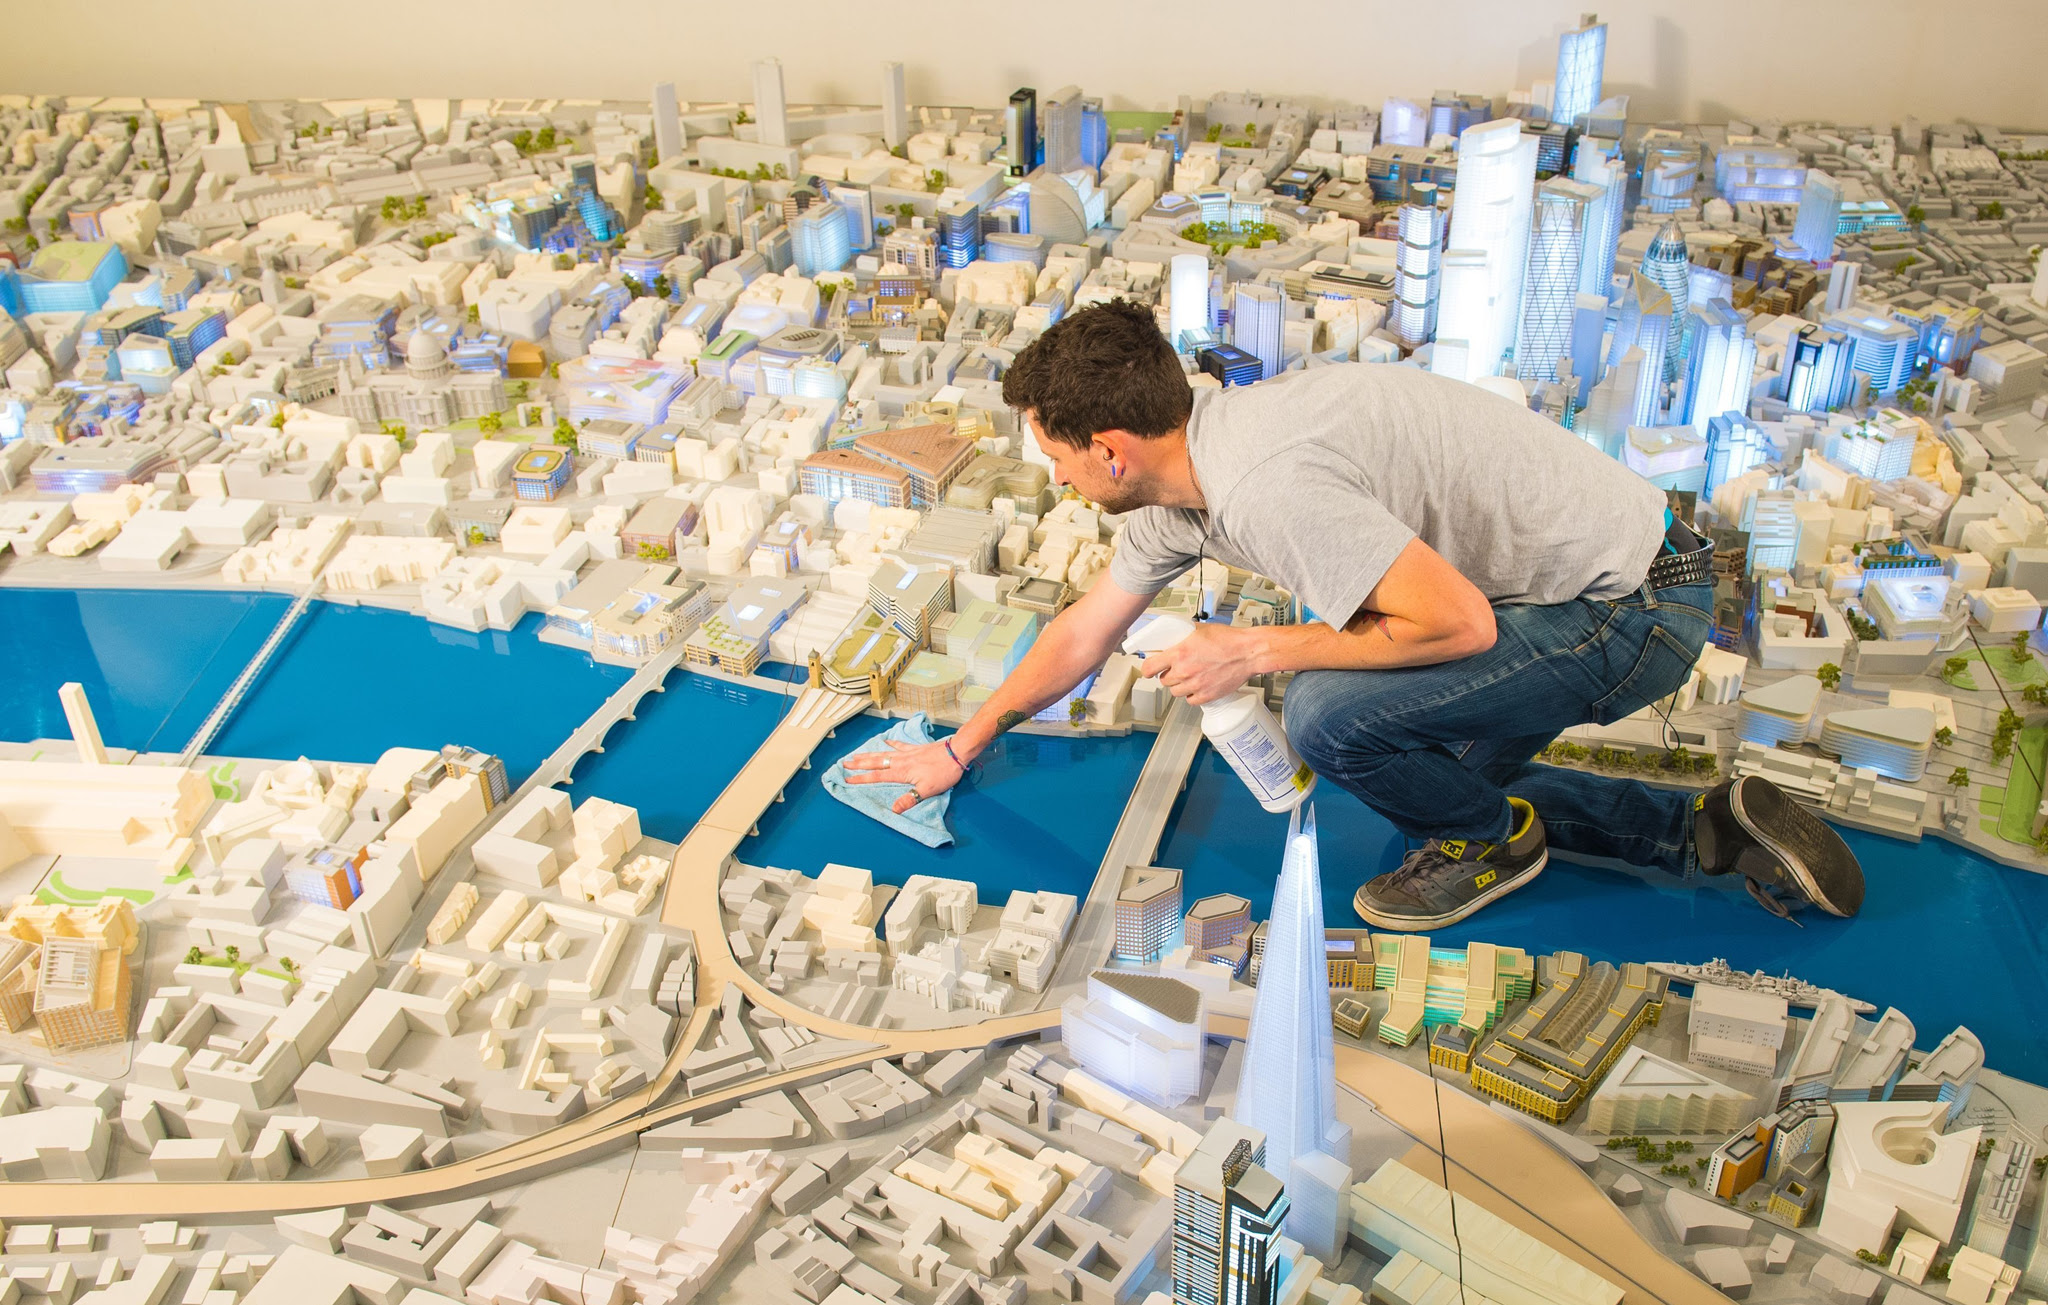 James Massey of Piper's Model Makers cleans the City of London s official 1:500th scale architectural model of central London, which has gone on public display at the City Centre gallery, London.